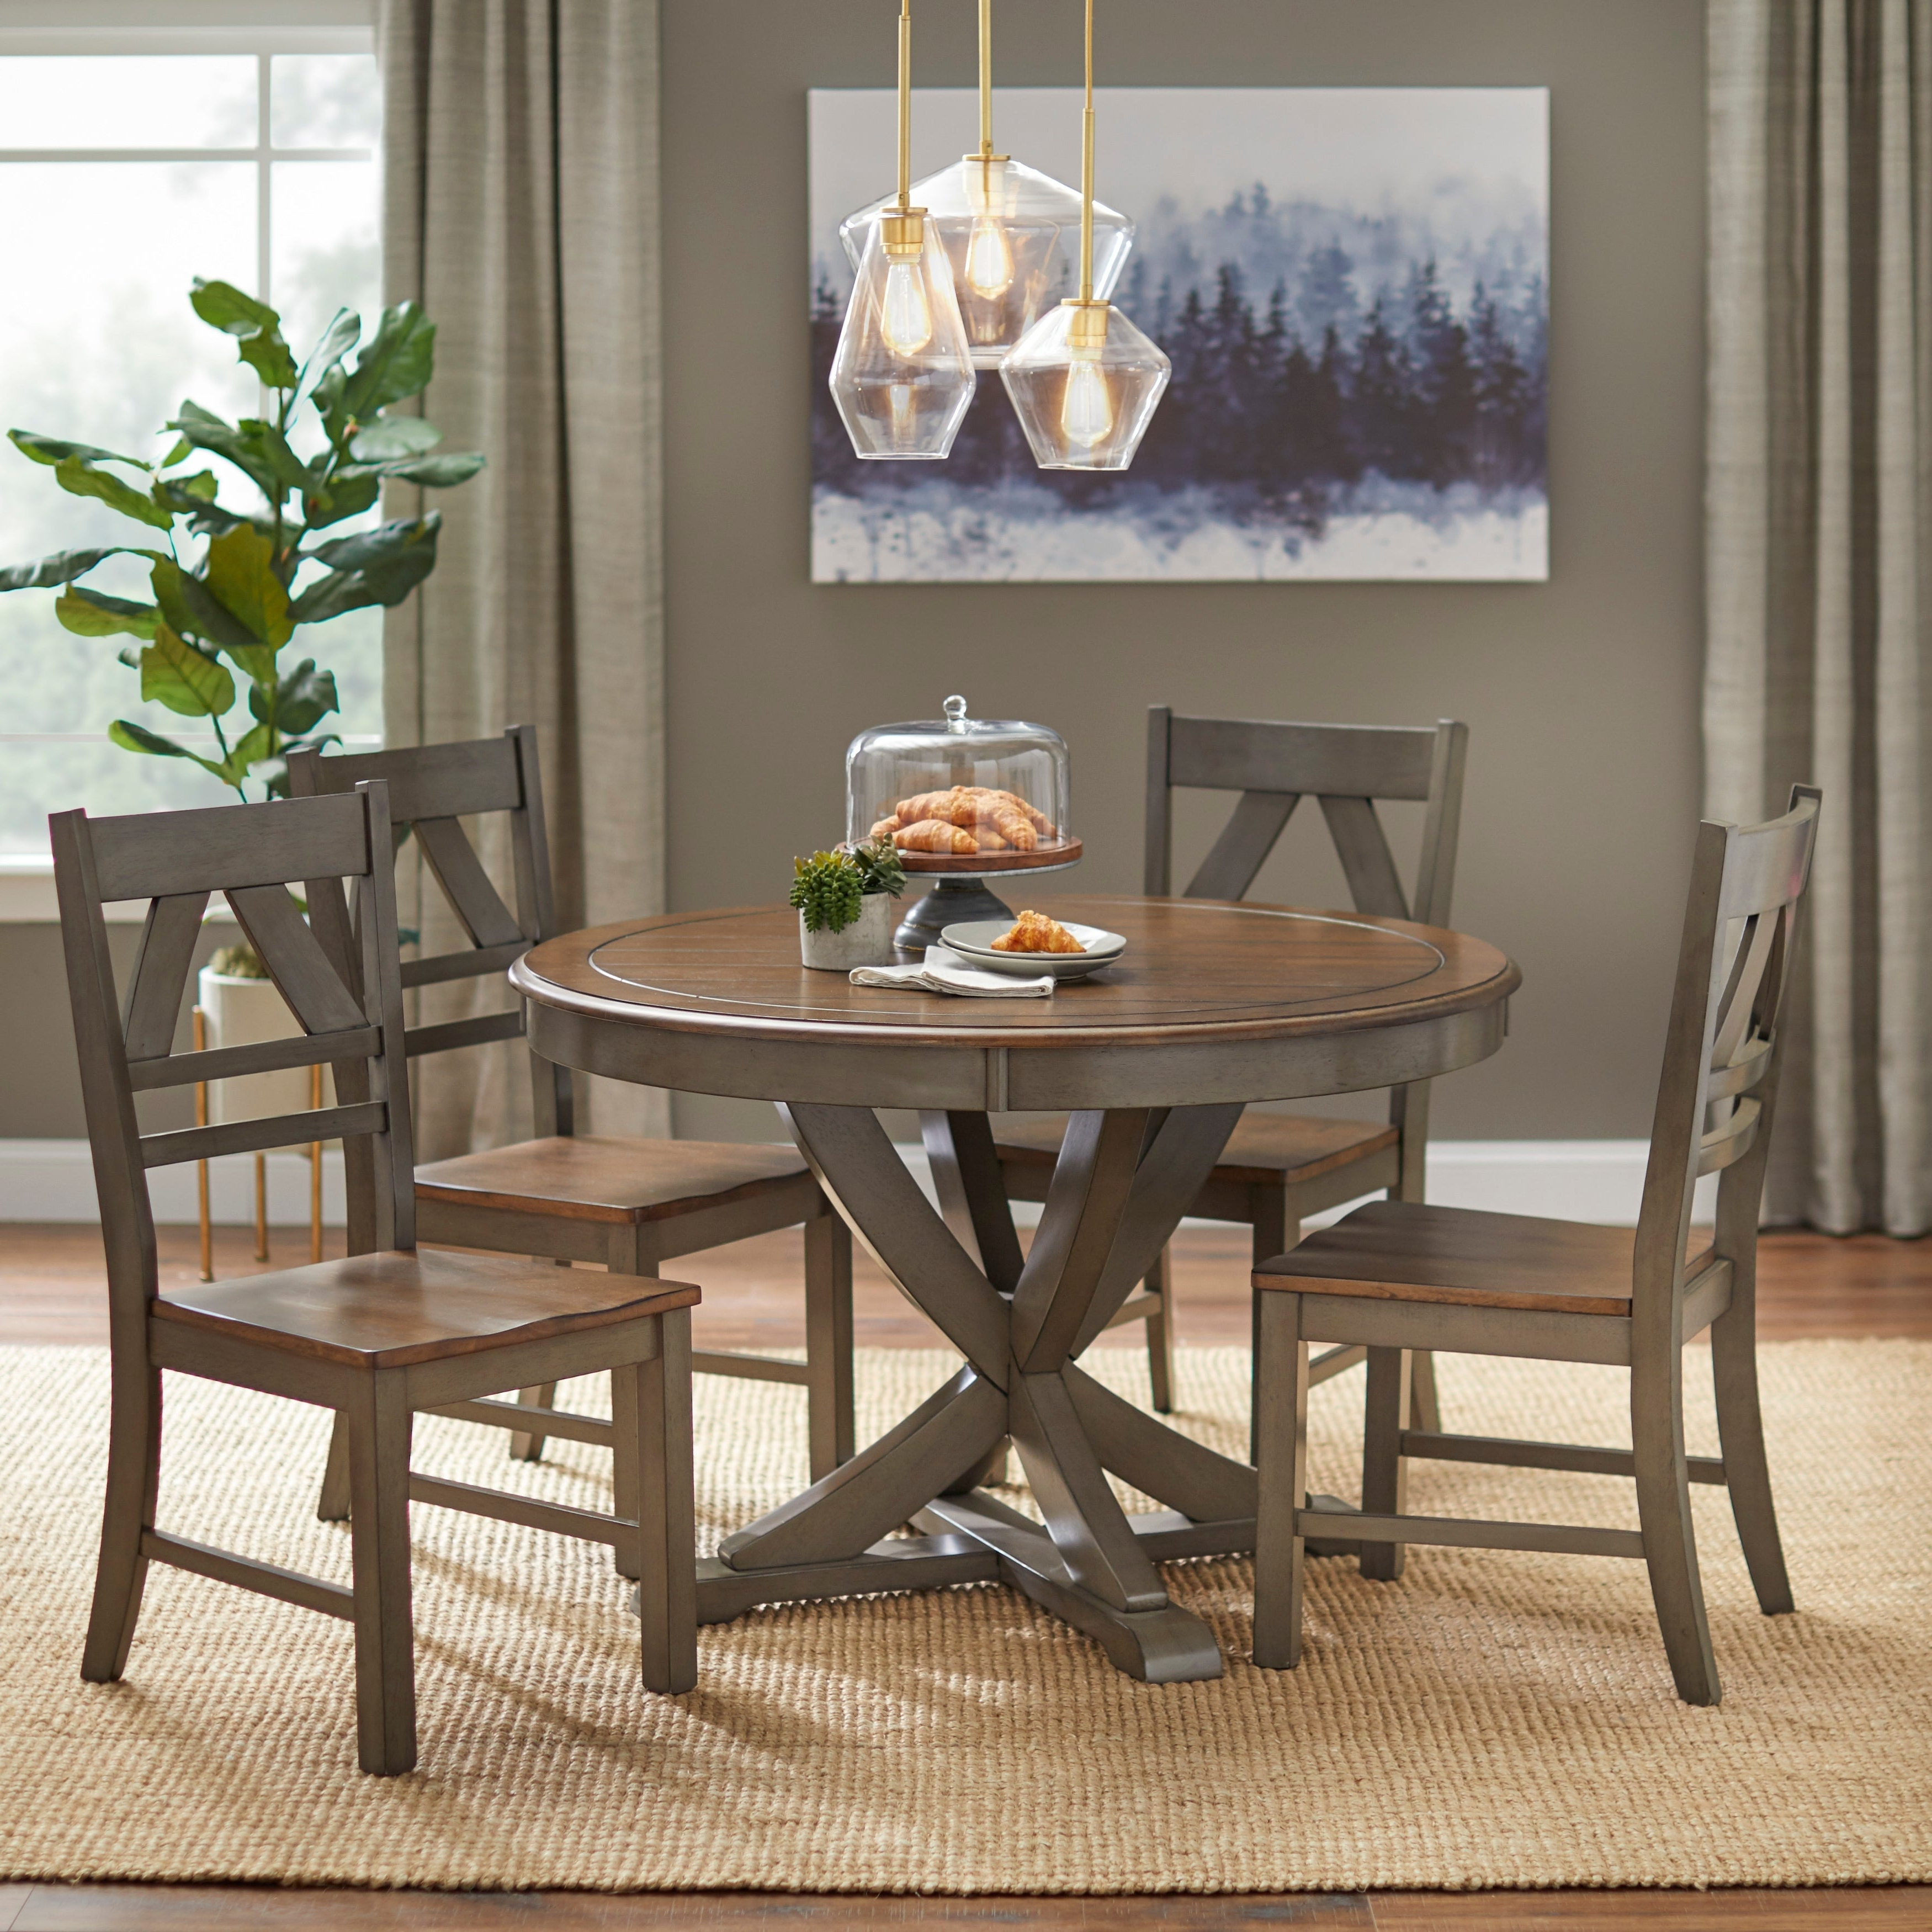 Bedfo 3 Piece Dining Sets Pertaining To Popular Buy 3 Piece Sets Kitchen & Dining Room Sets Online At Overstock (View 7 of 25)